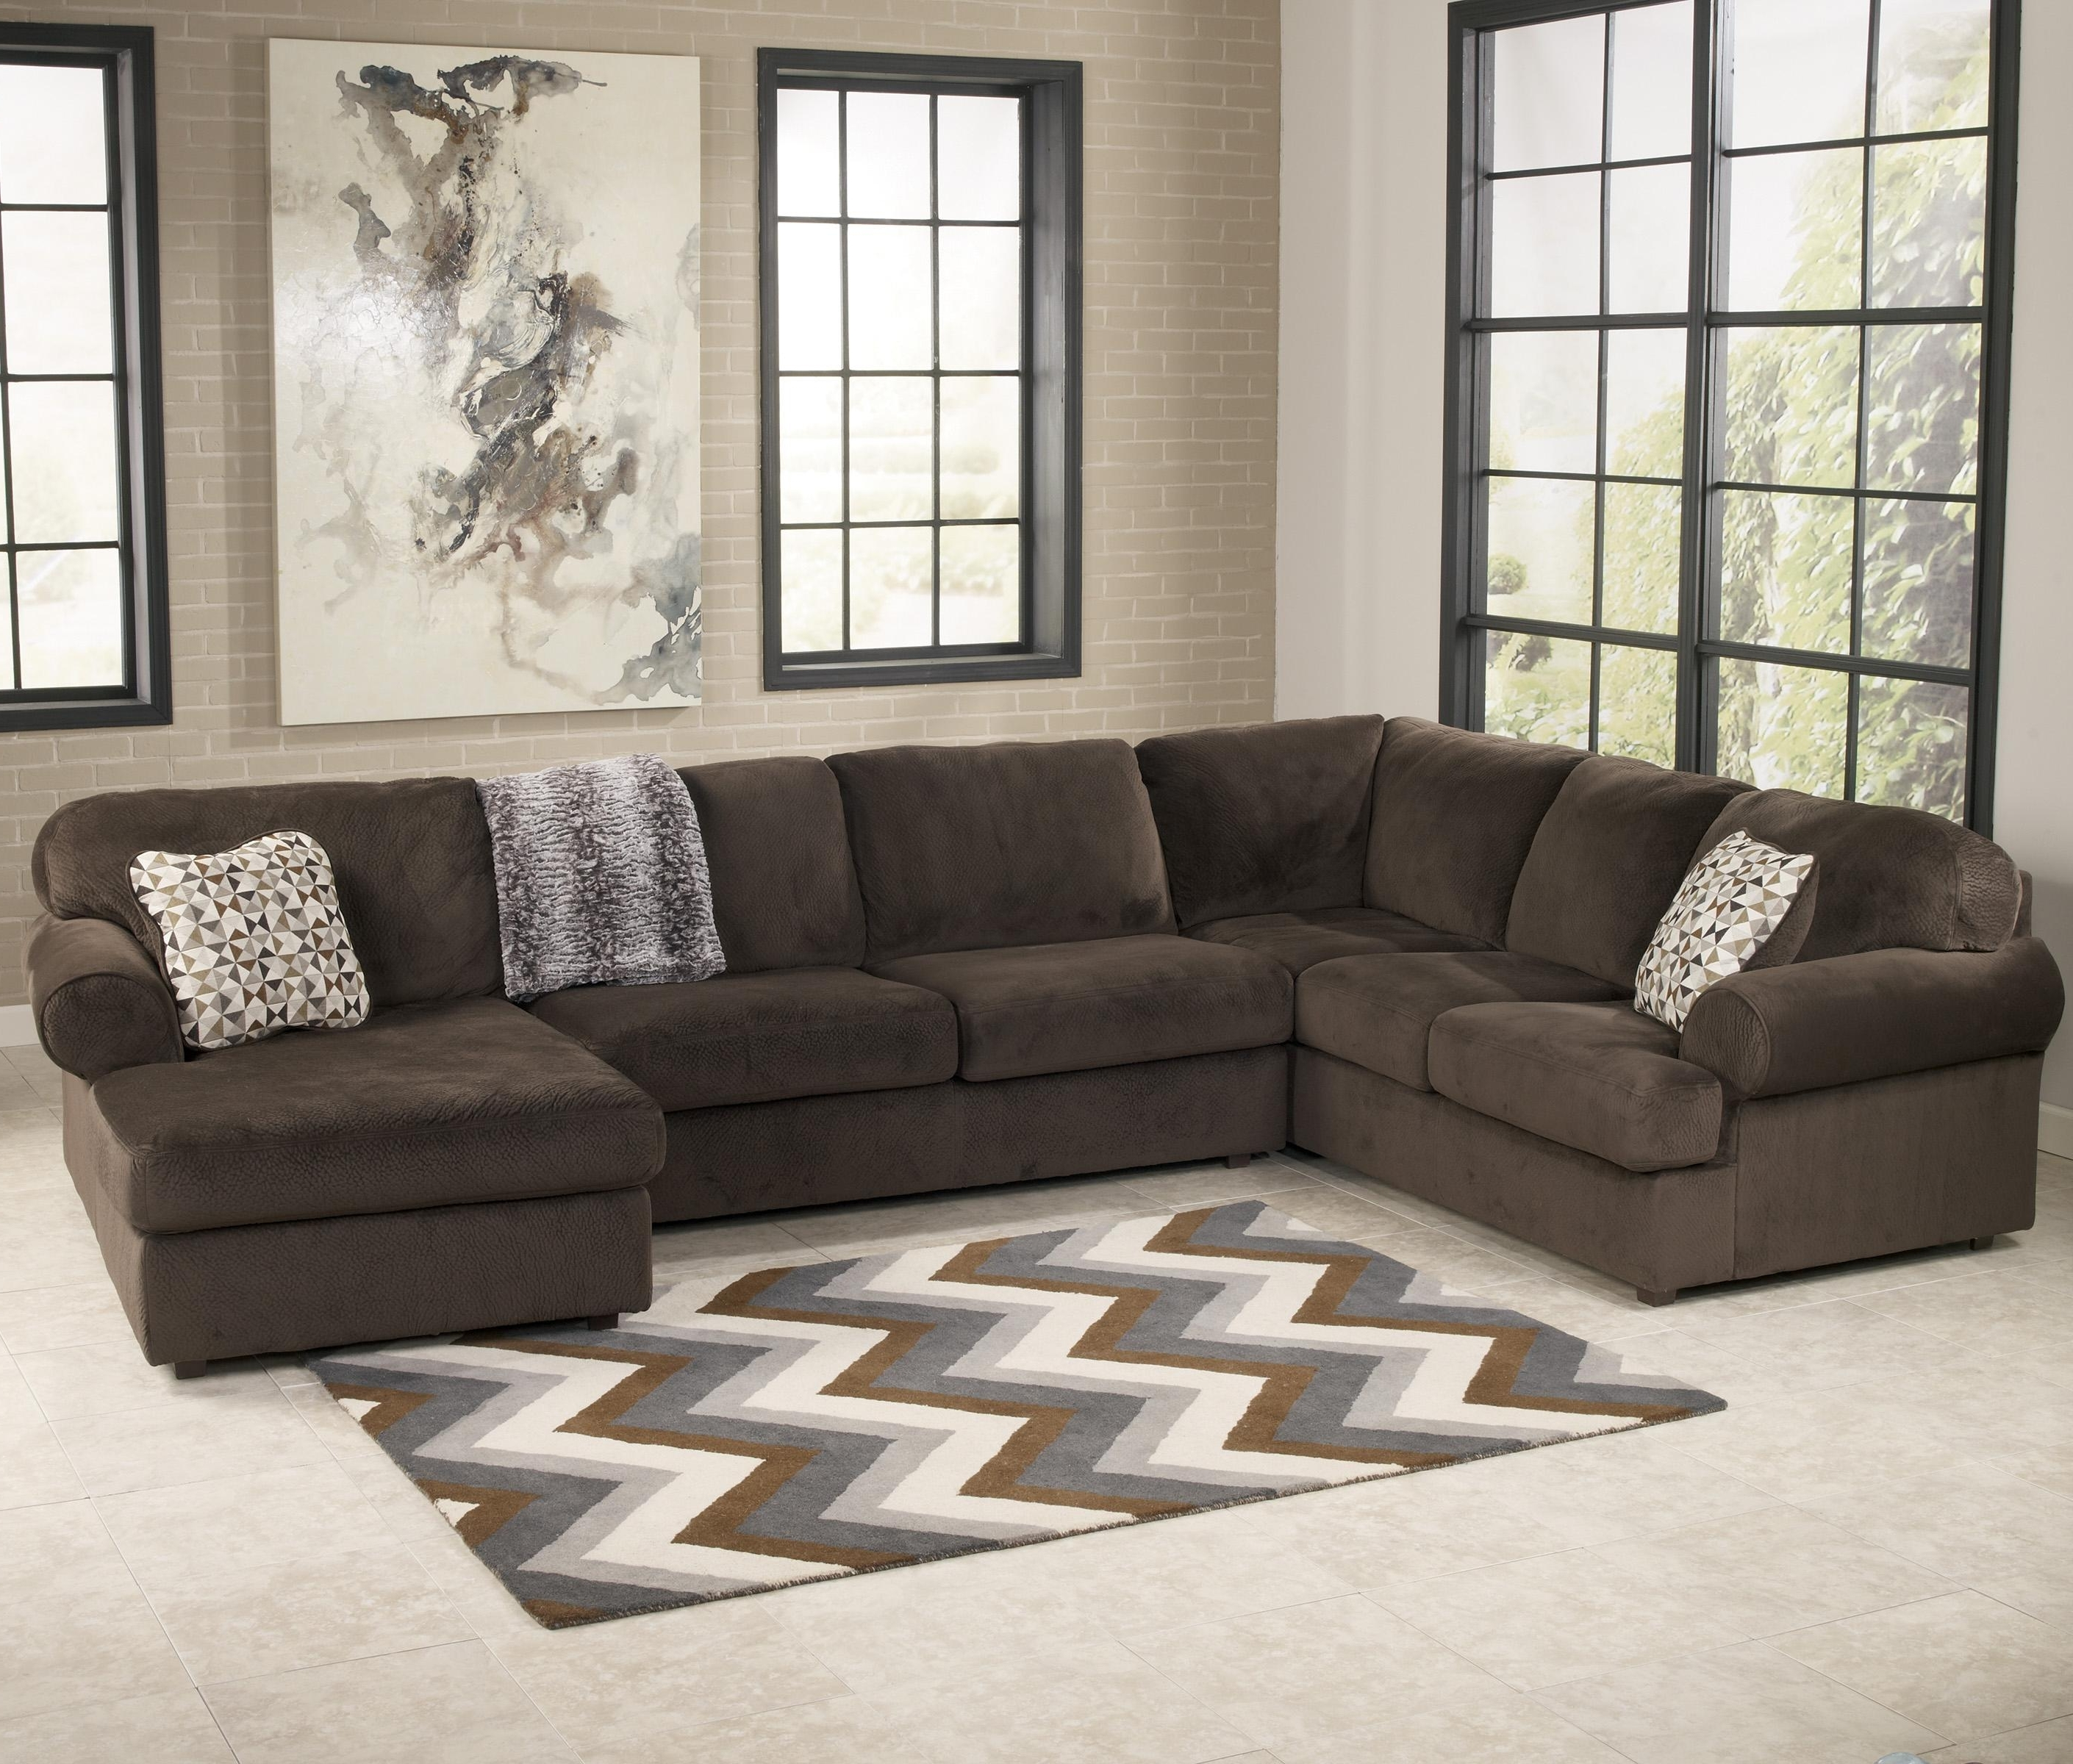 Nh Sectional Sofas Throughout Well Known Furniture & Sofa: Efo Furniture (View 3 of 15)